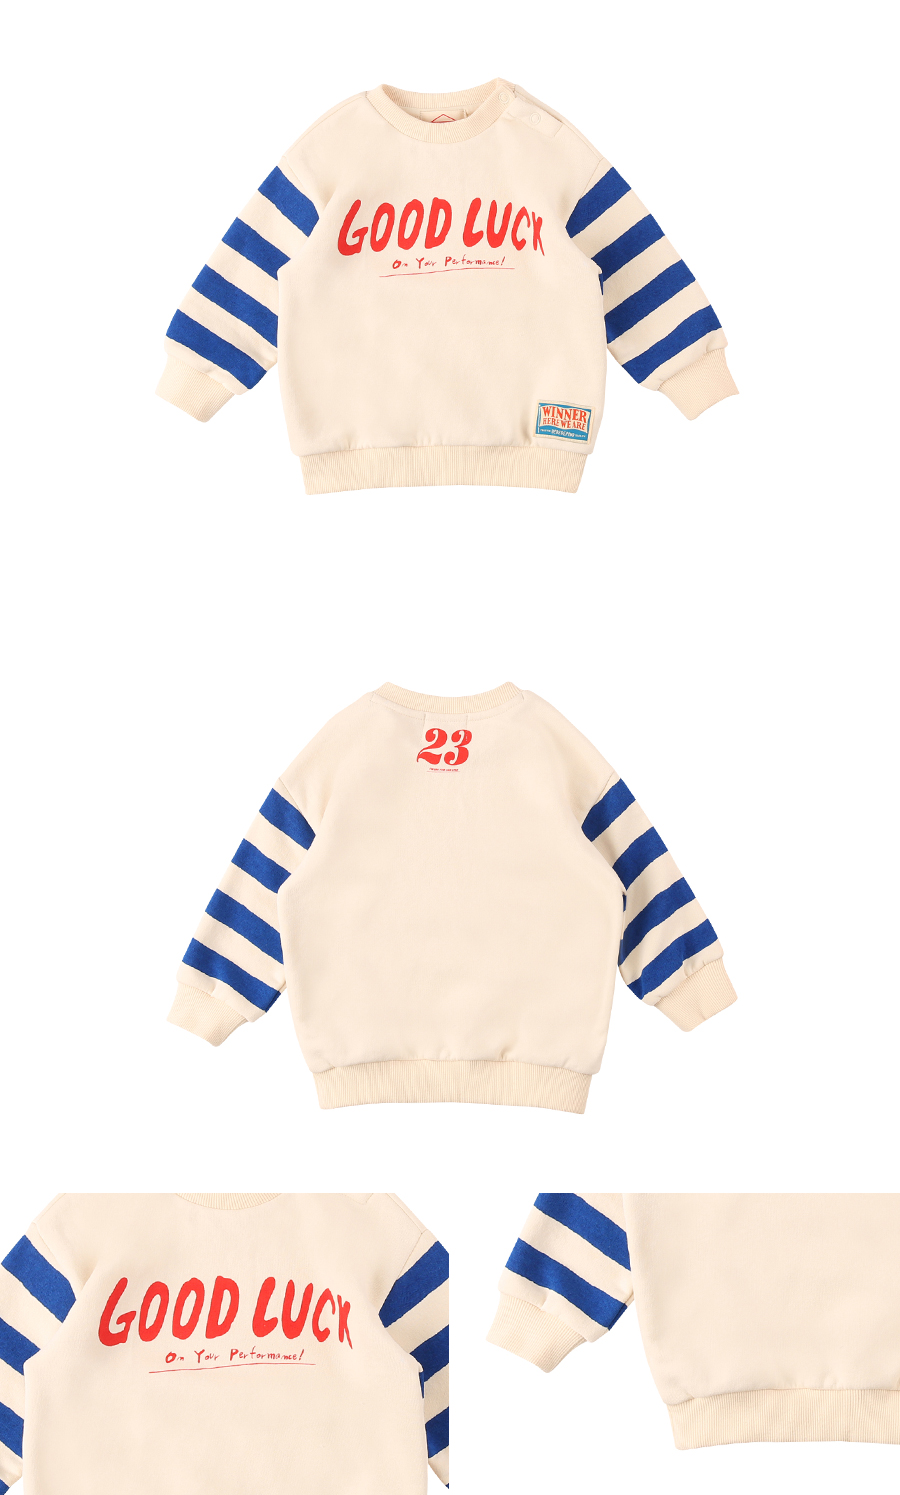 Good luck baby stripe sleeve sweatshirt 상세 이미지